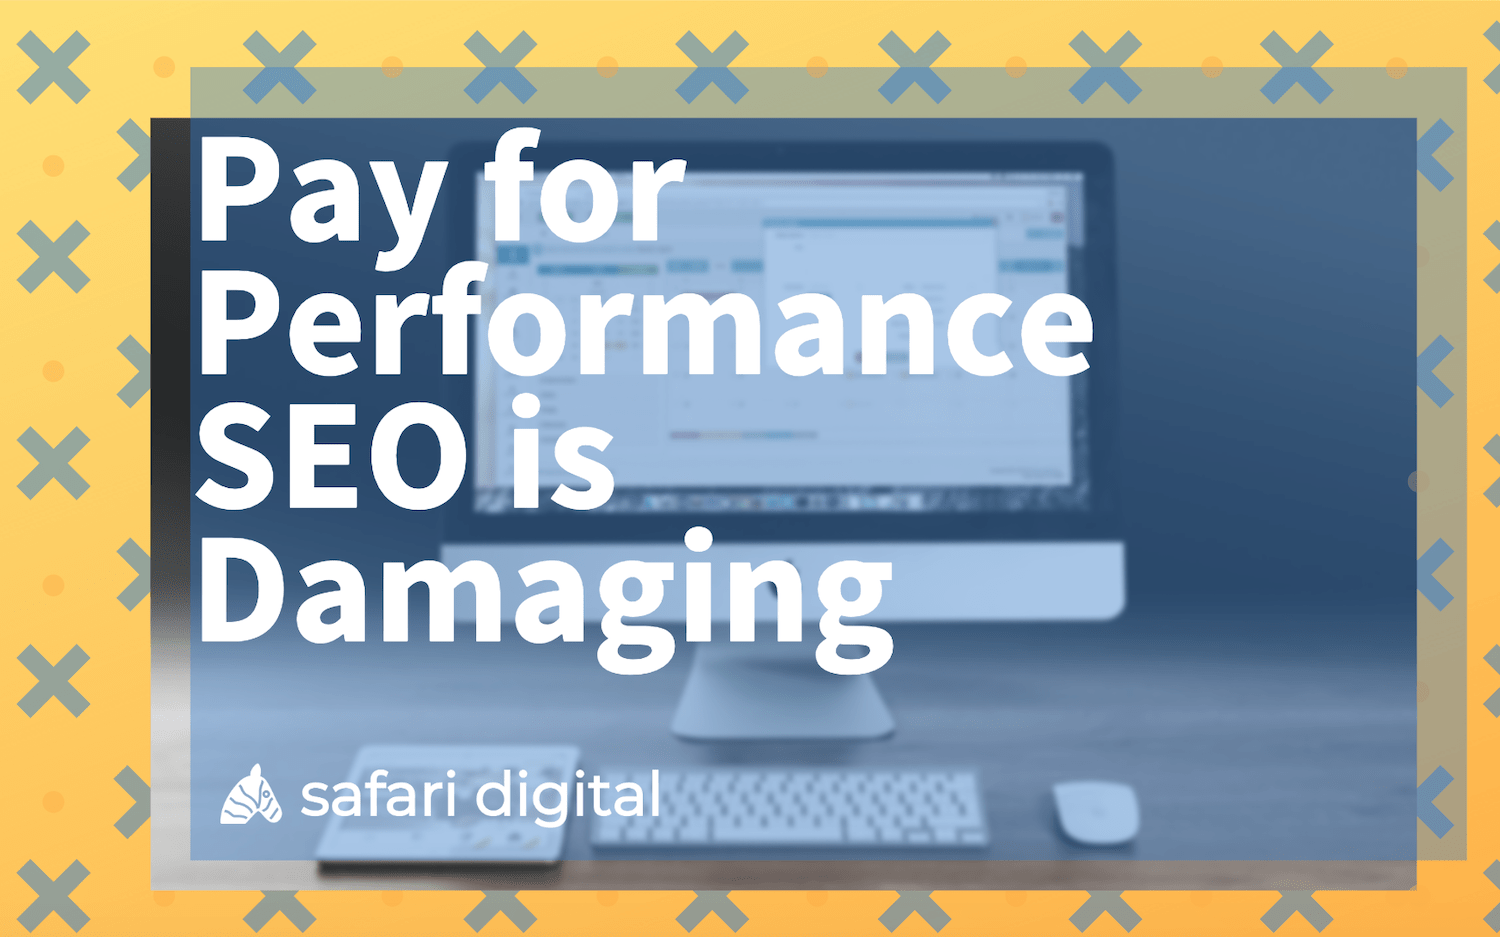 Pay for performance SEO is damaging banner image Large